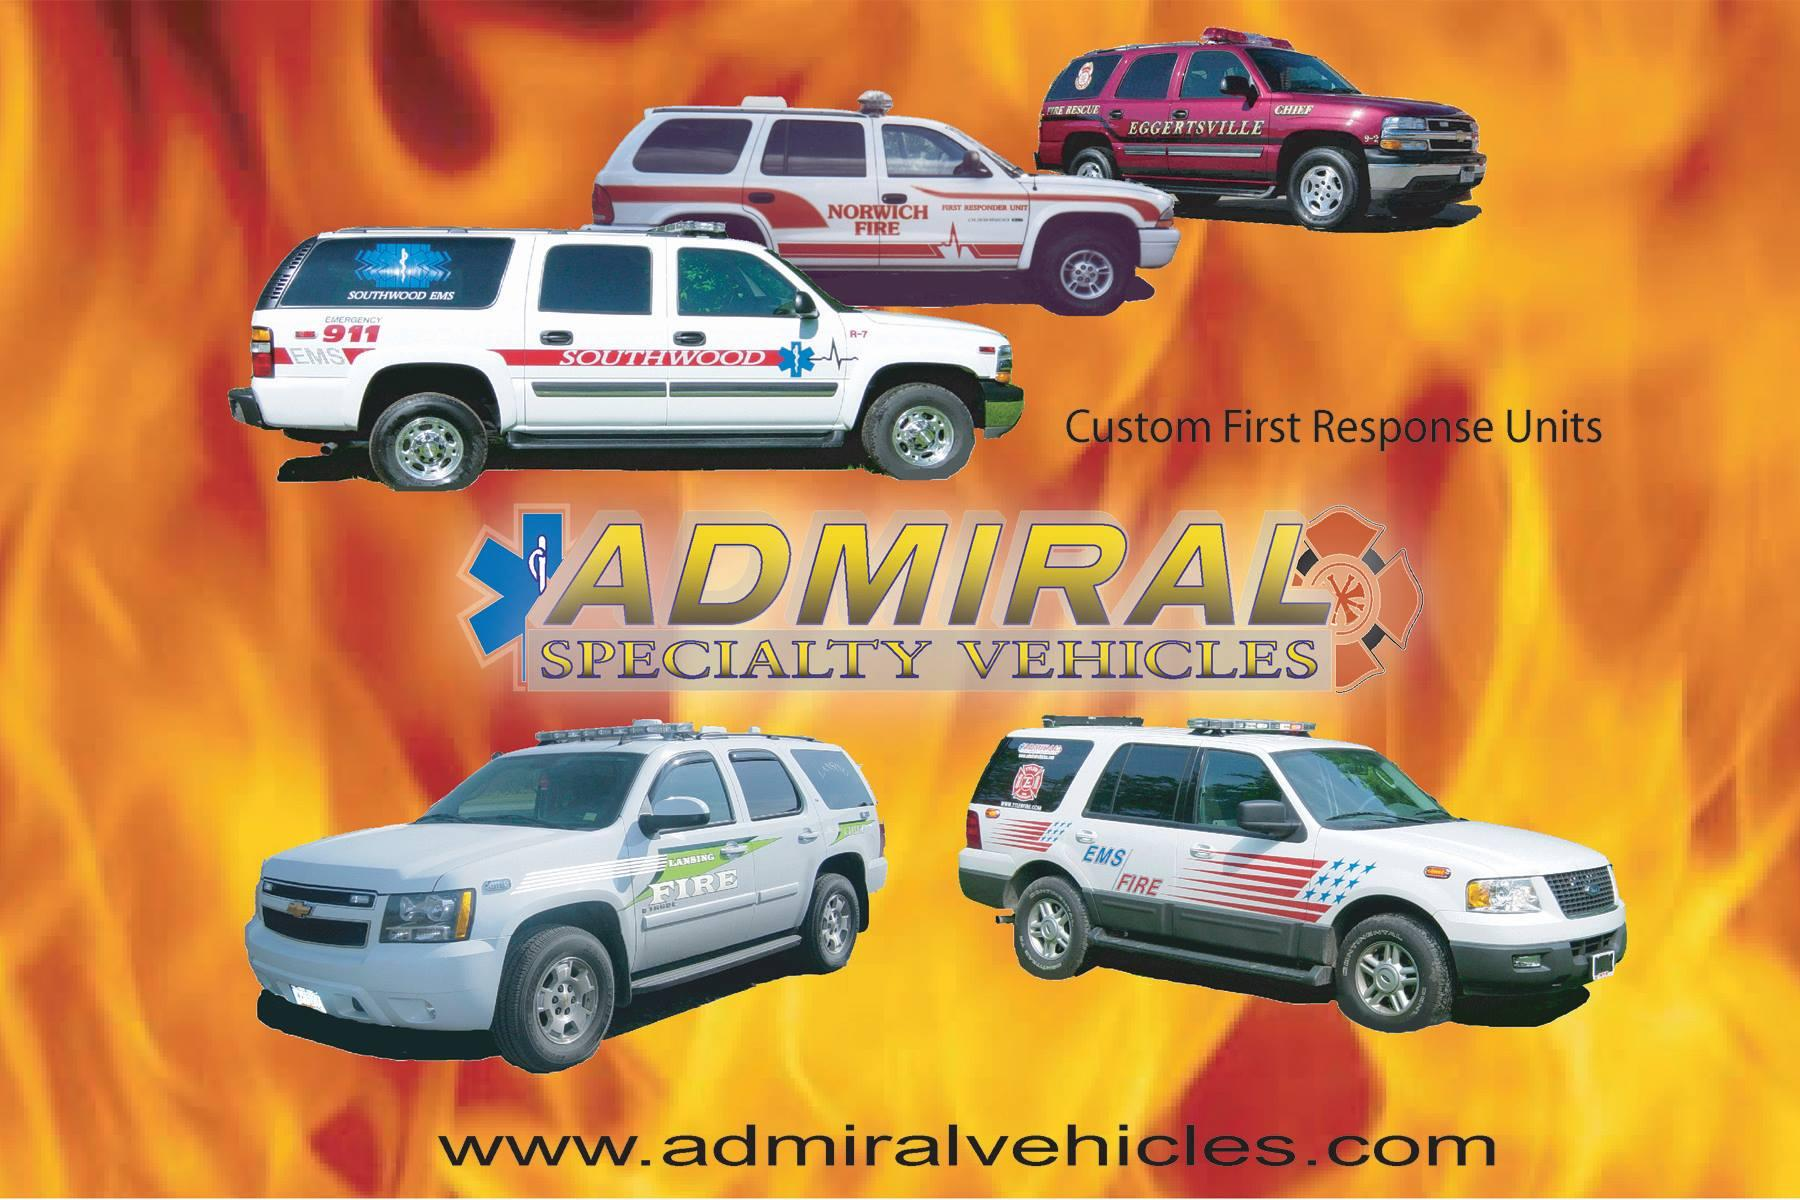 Home | Admiral Specialty Vehicles